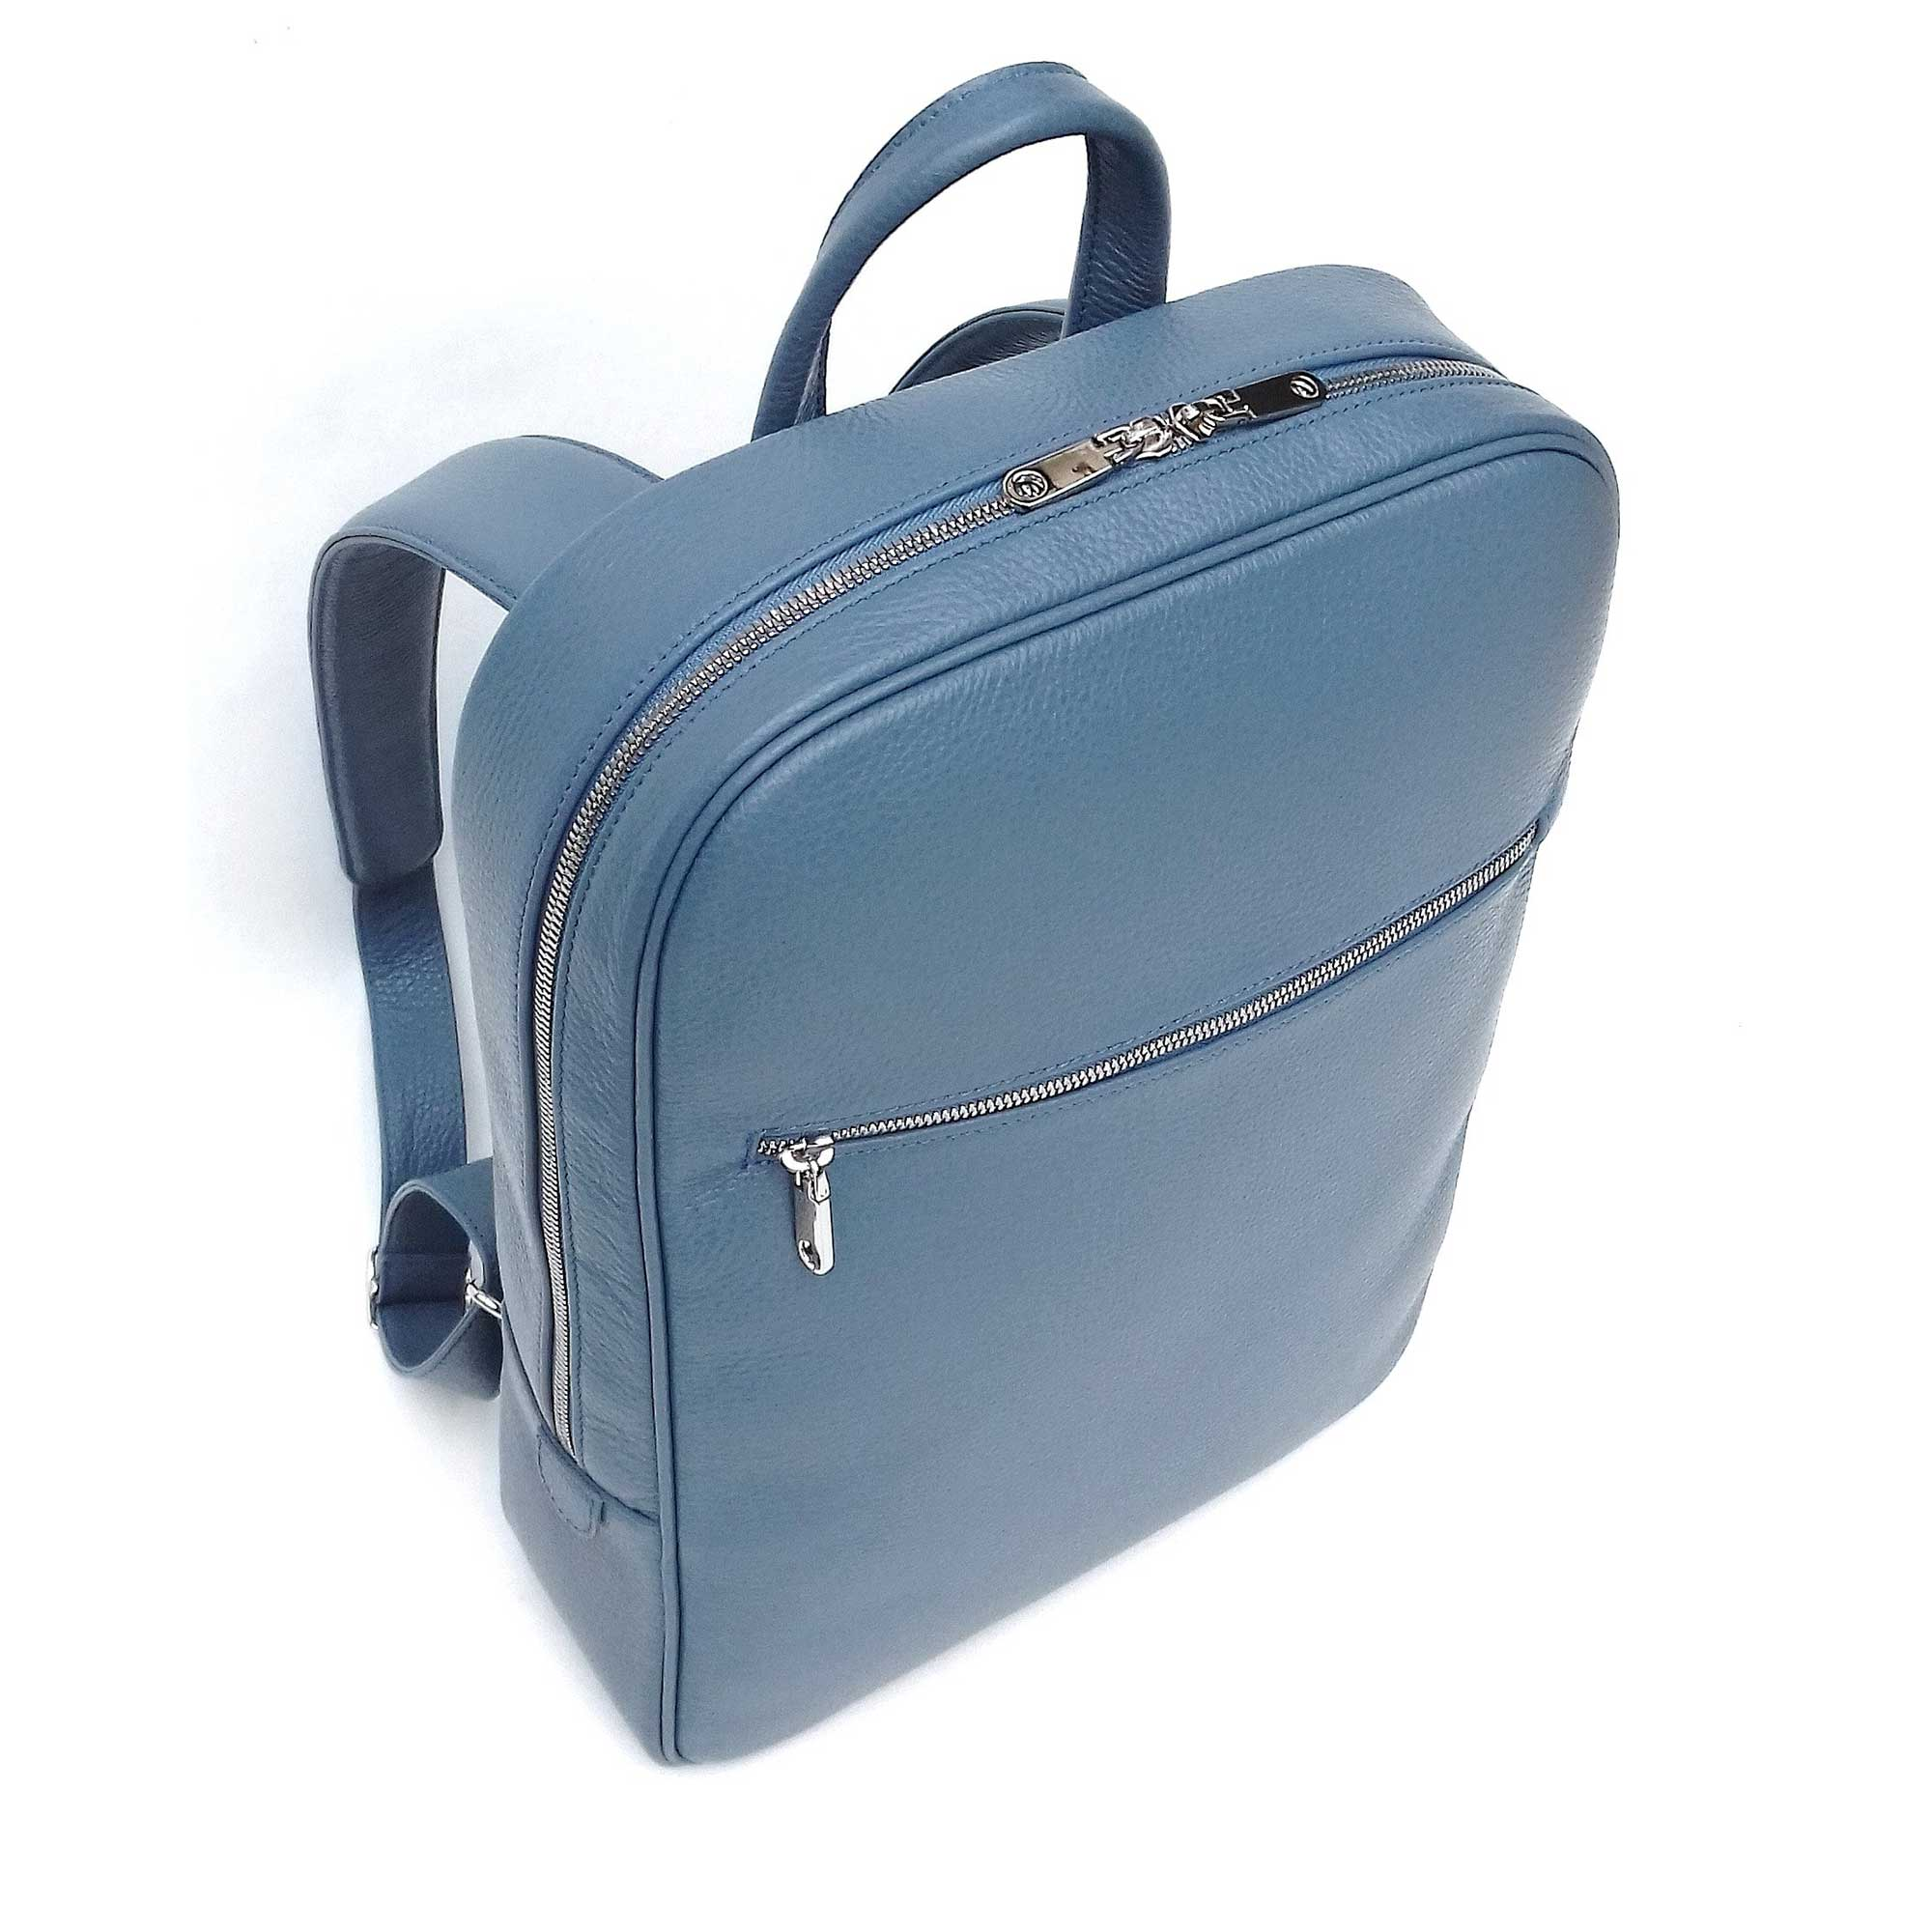 Backpack, Italian Leather Backpack Light Blue, Top Front View - Made in Italy for DiLoro Leather